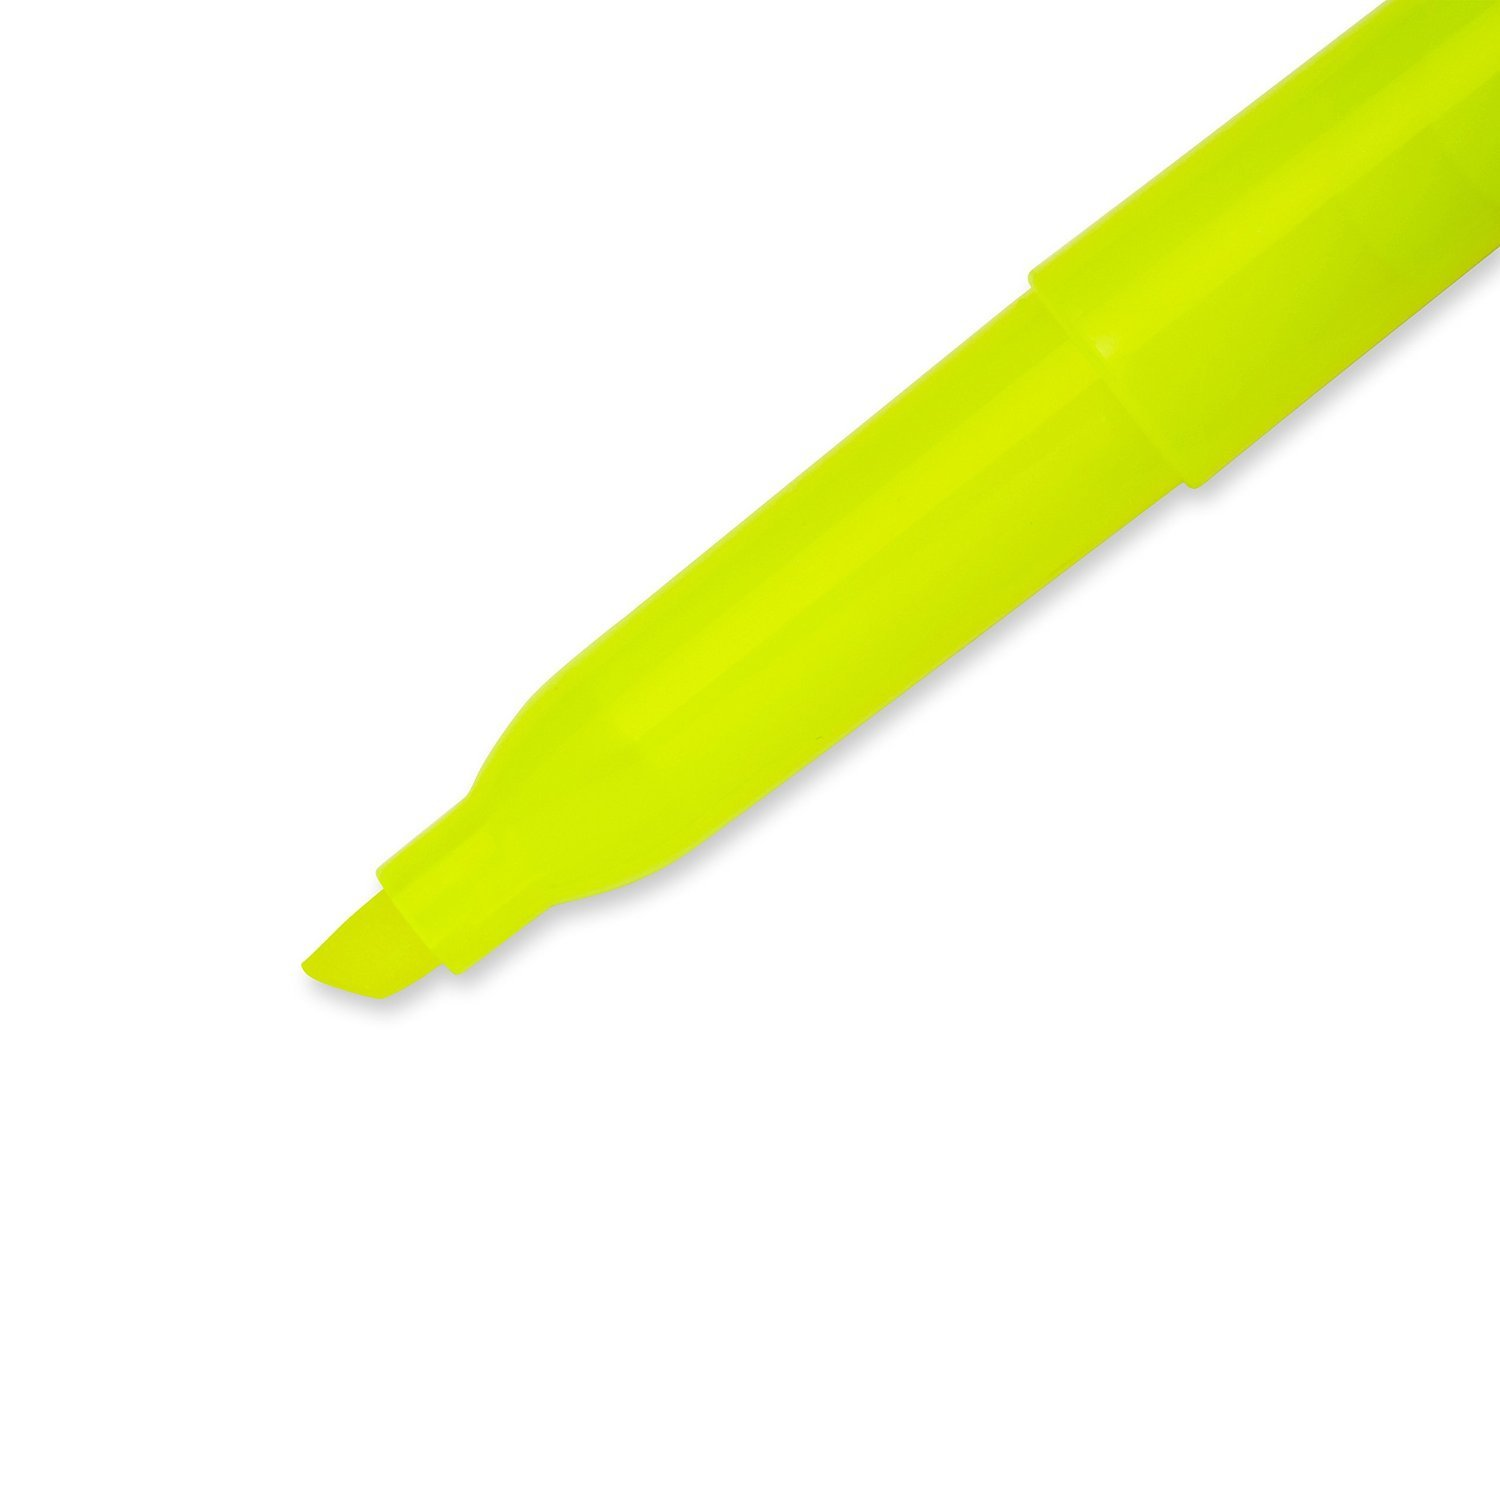 Sharpie Accent Pocket-Style Highlighters, Fluorescent Yellow, 48 Count by Sharpie (Image #2)